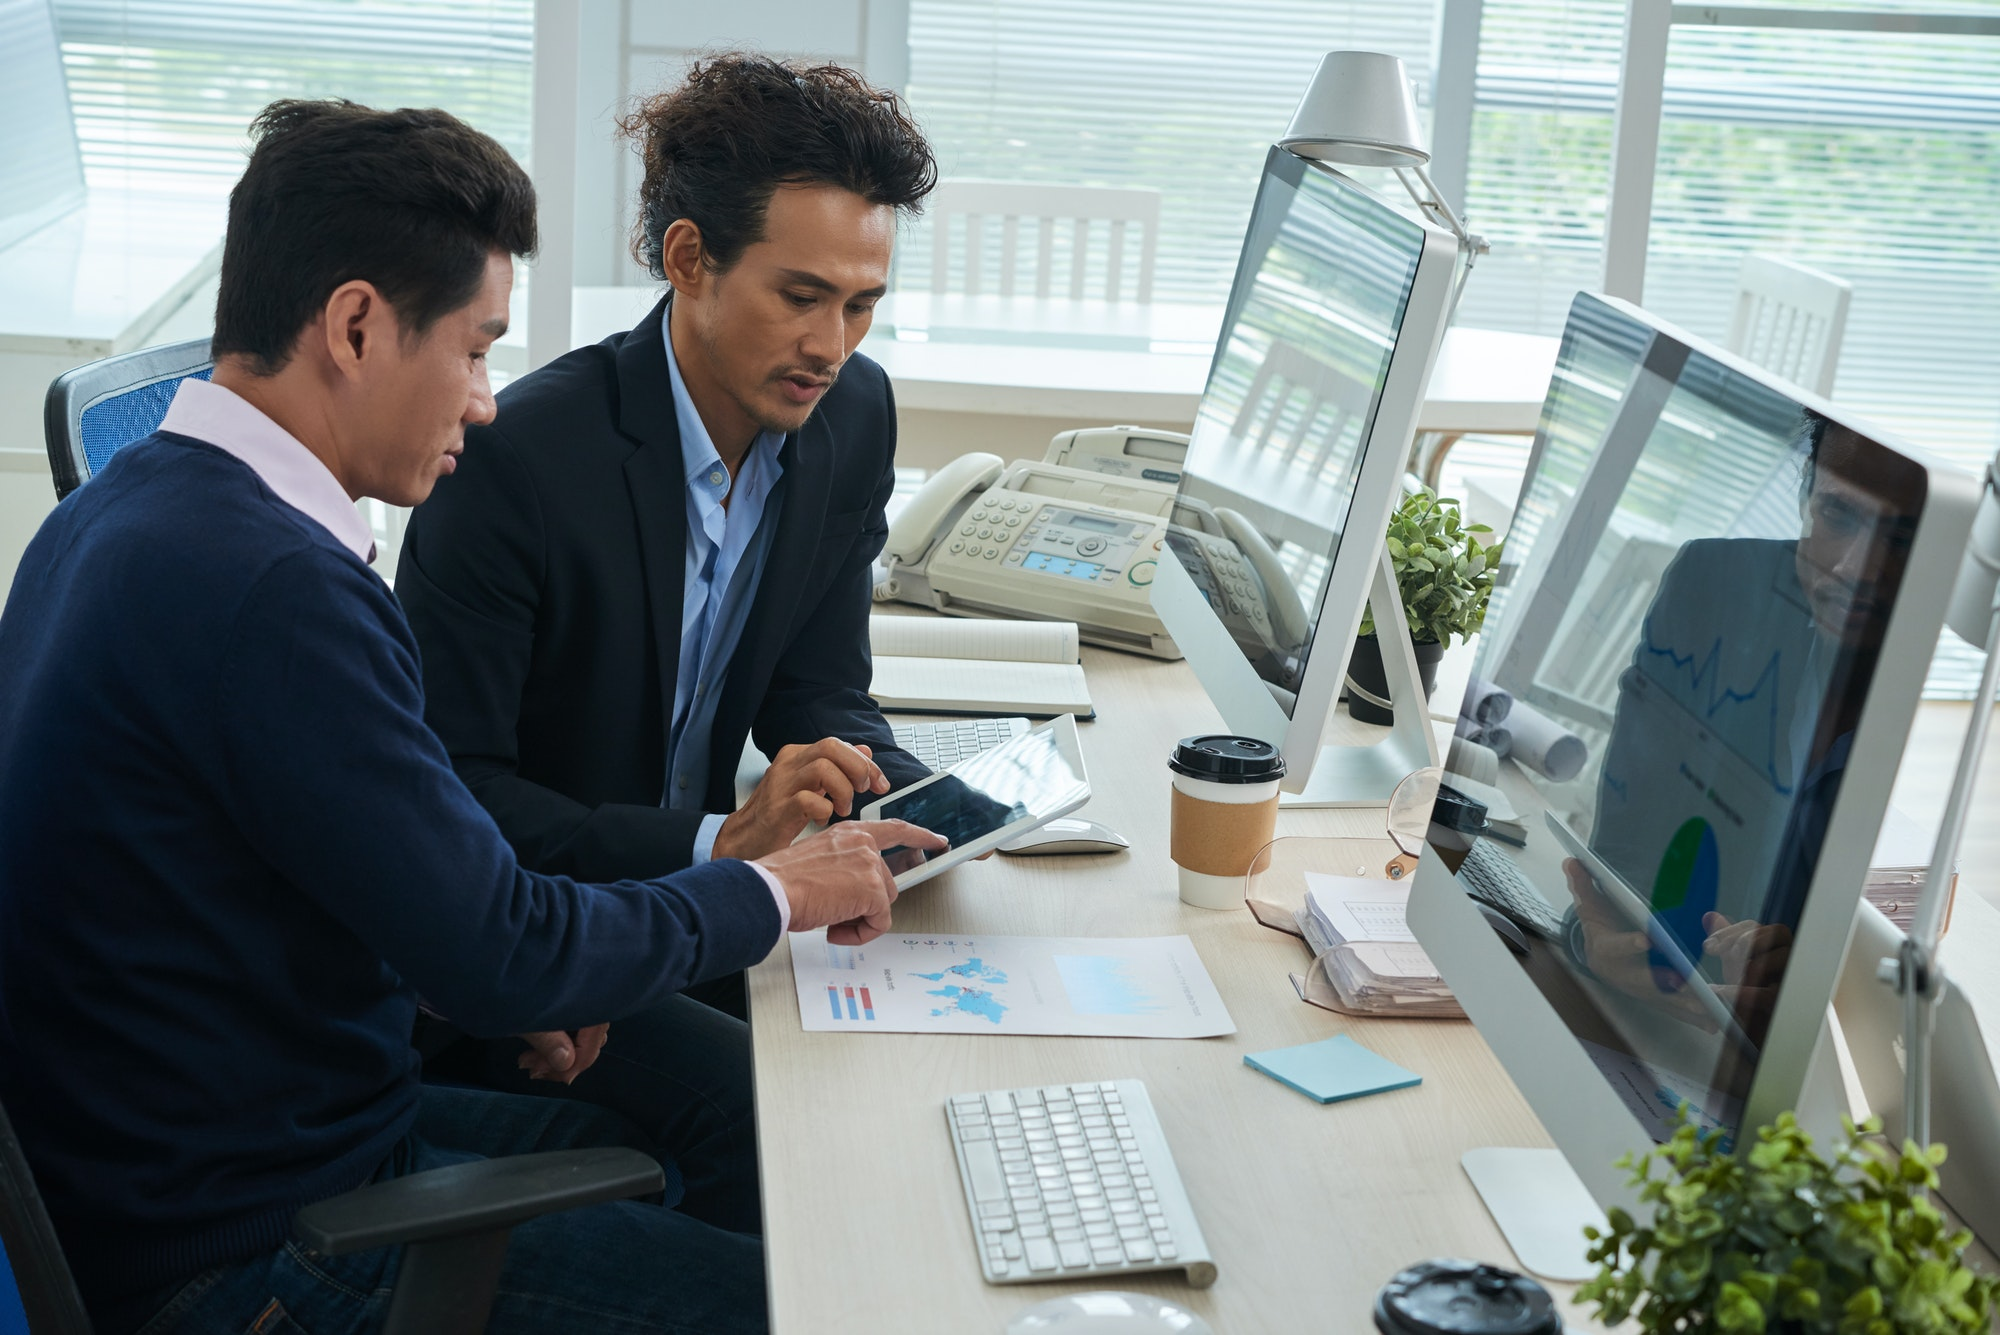 Businessmen working with finance data on tablet